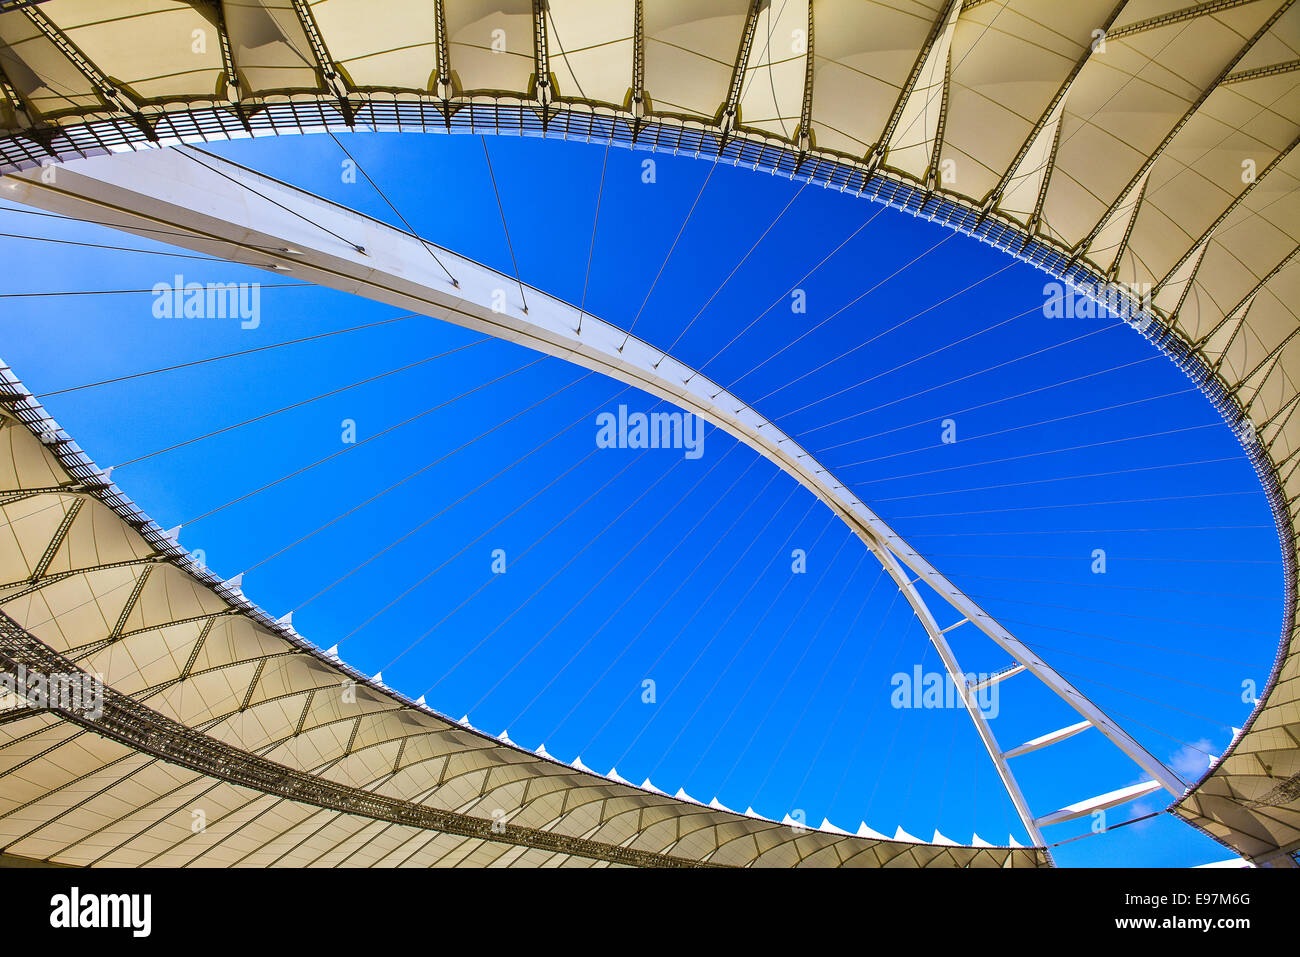 South Africa World Cup 2010, the Moses Mabhida stadium of Durban, capacity 70.000 - Stock Image